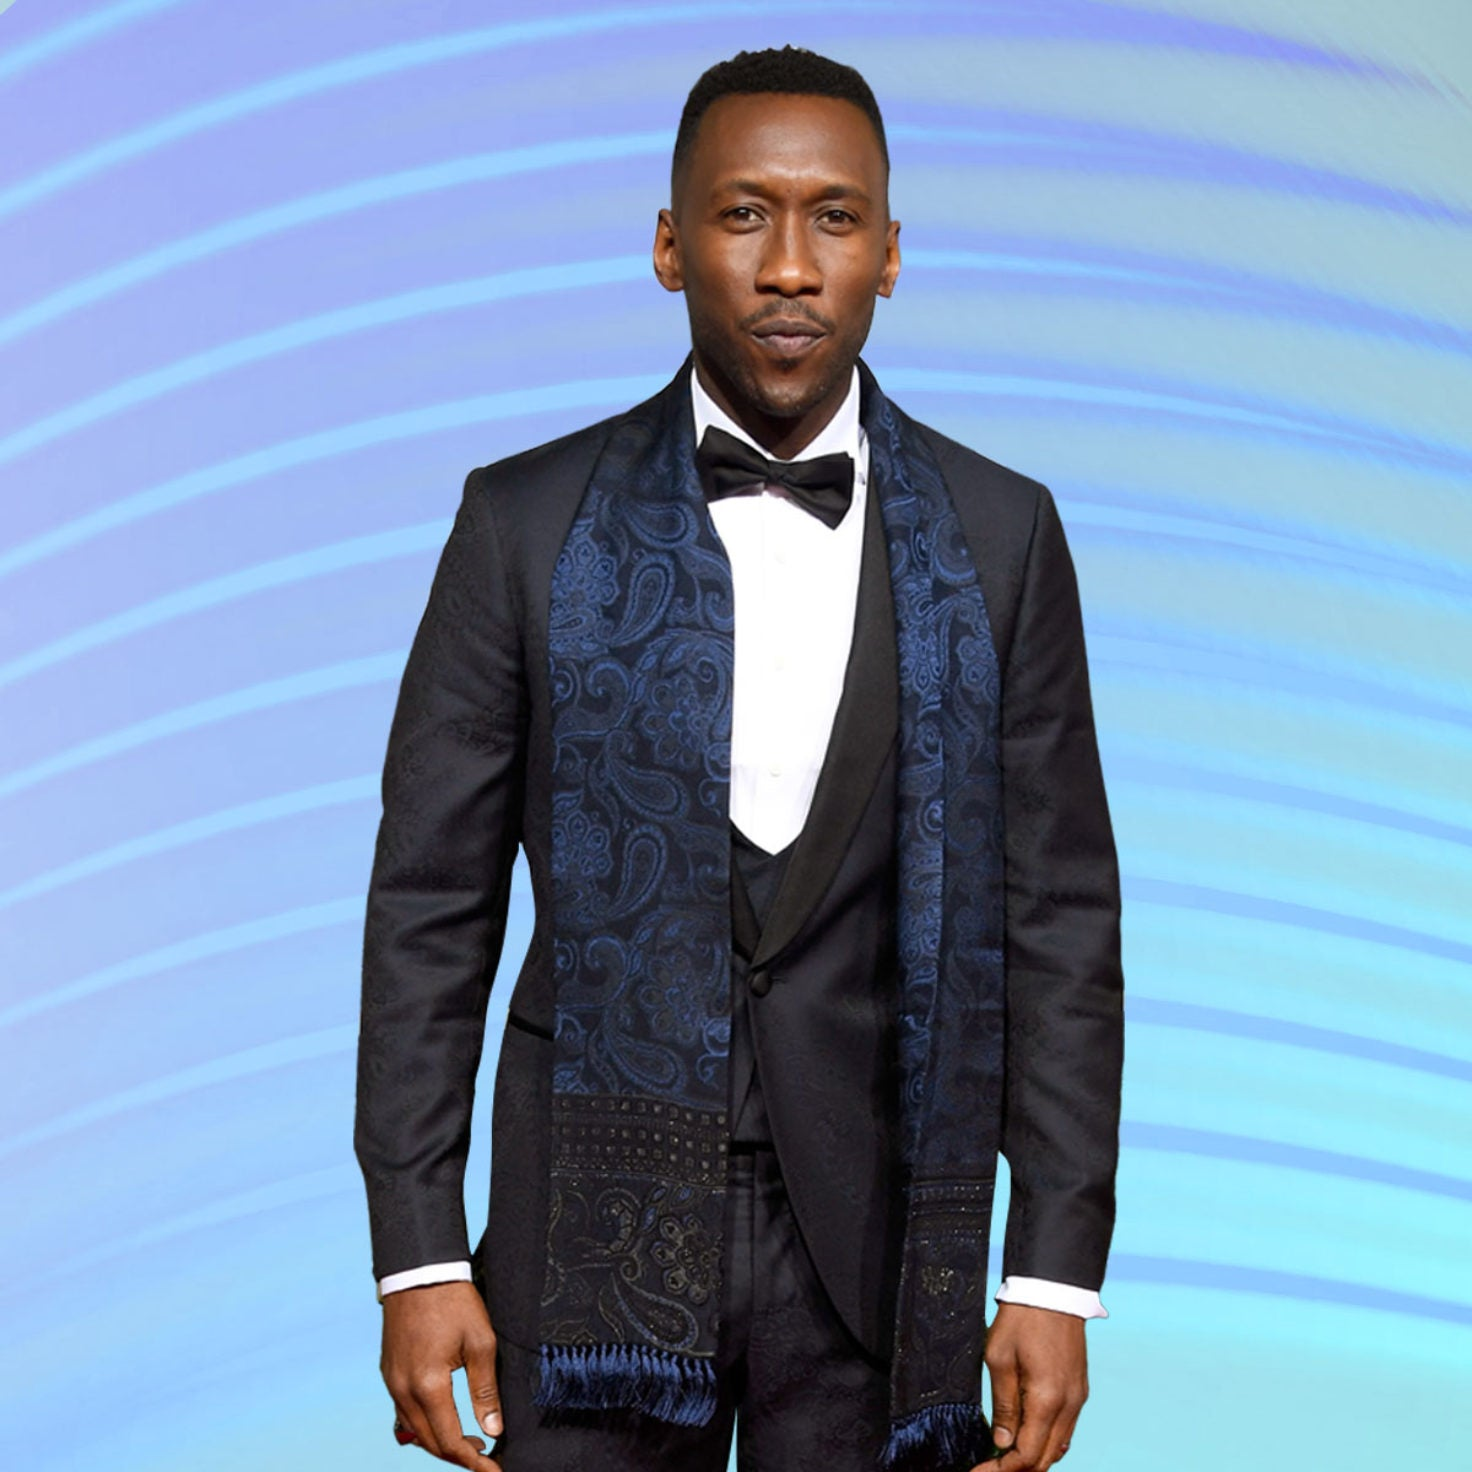 Find Out What Sport Mahershala Ali Played Before He Became An Oscar Winner